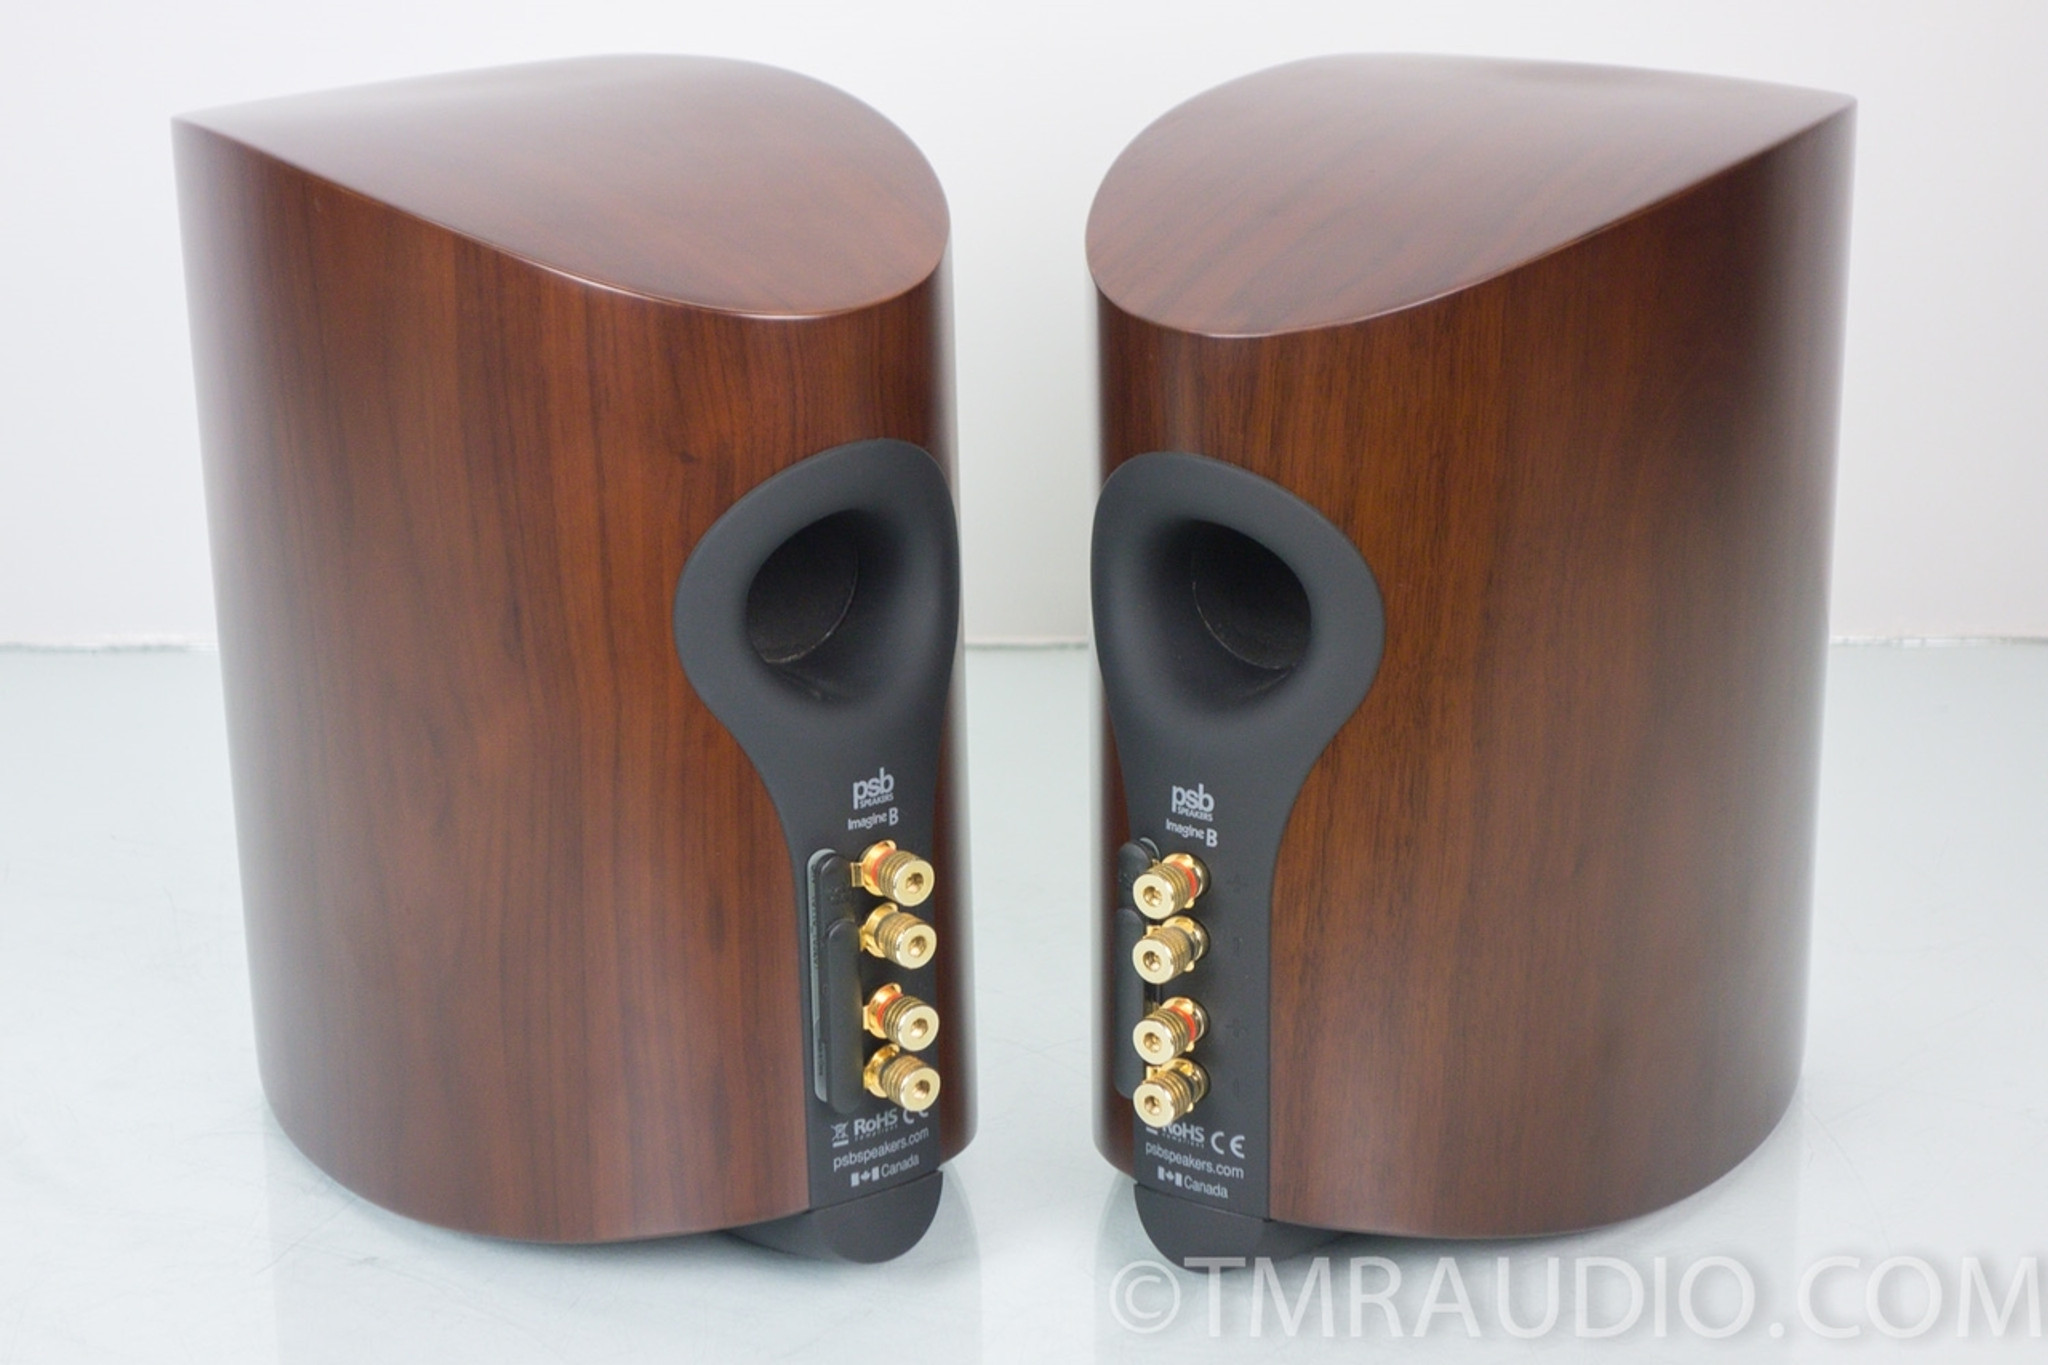 PSB Imagine B Bookshelf Speakers Excellent Walnut Pair In Factory Box